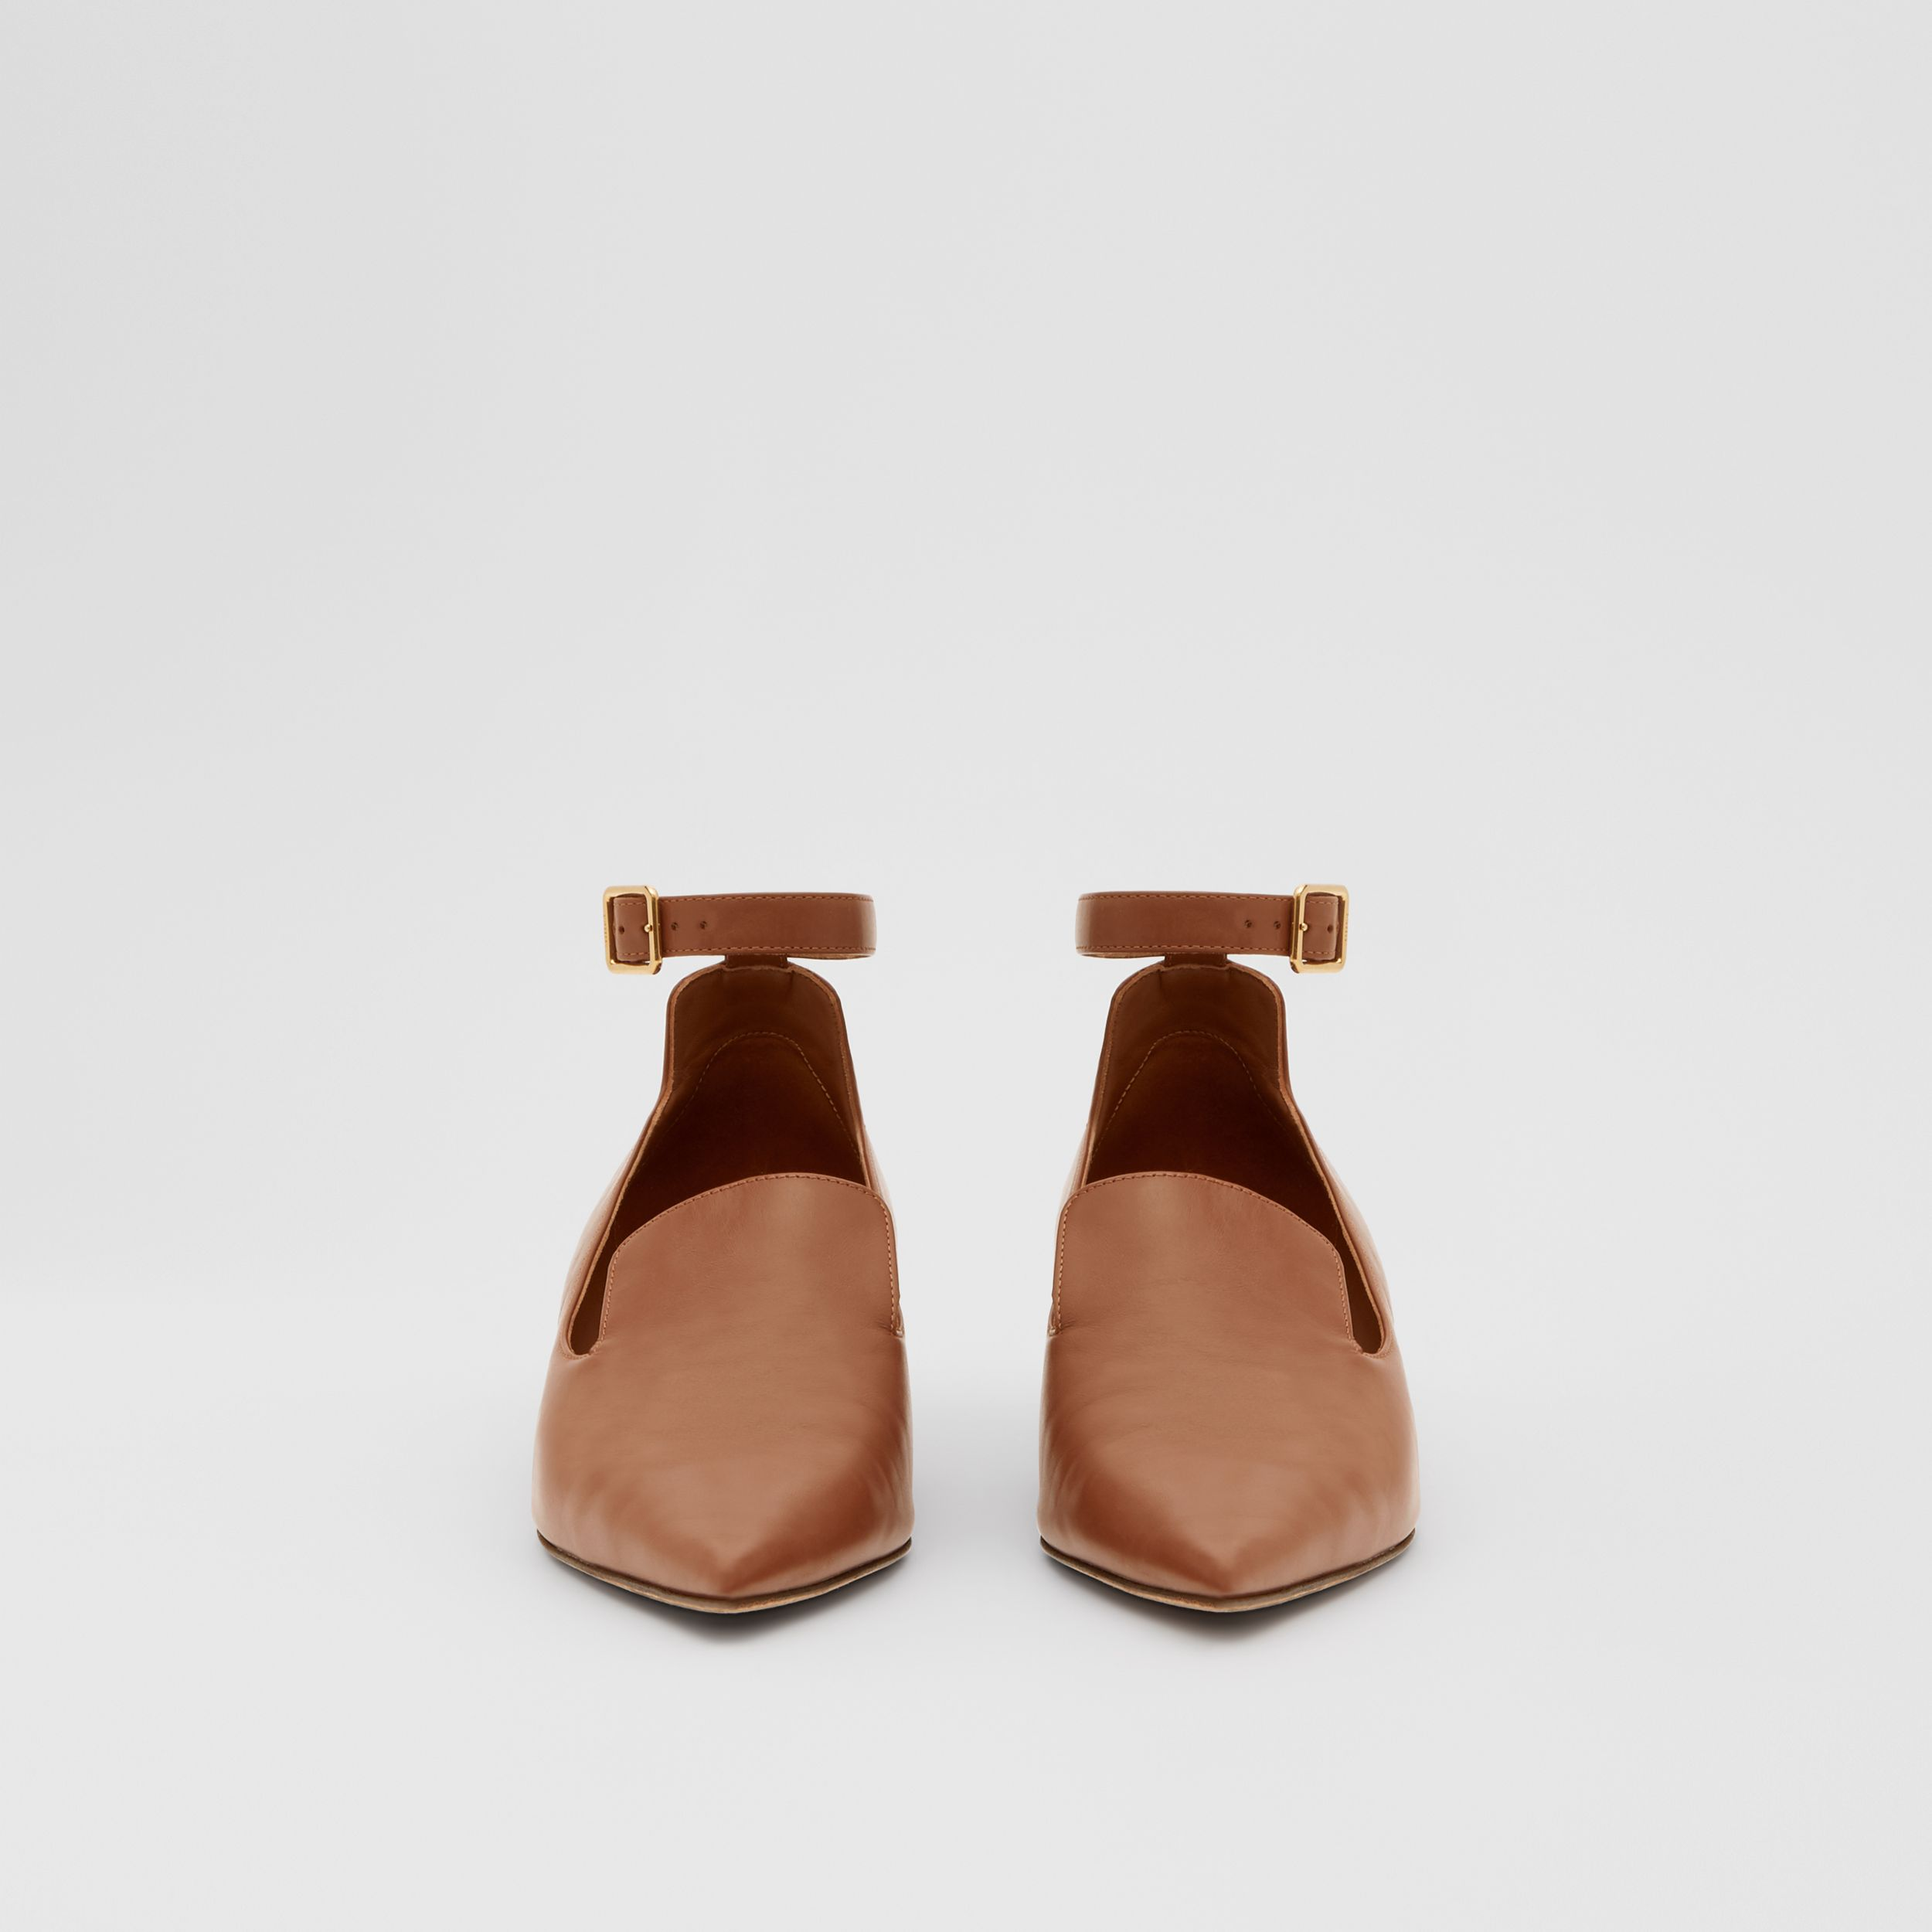 Leather Point-toe Kitten-heel Pumps in Soft Camel - Women | Burberry Hong Kong S.A.R - 3